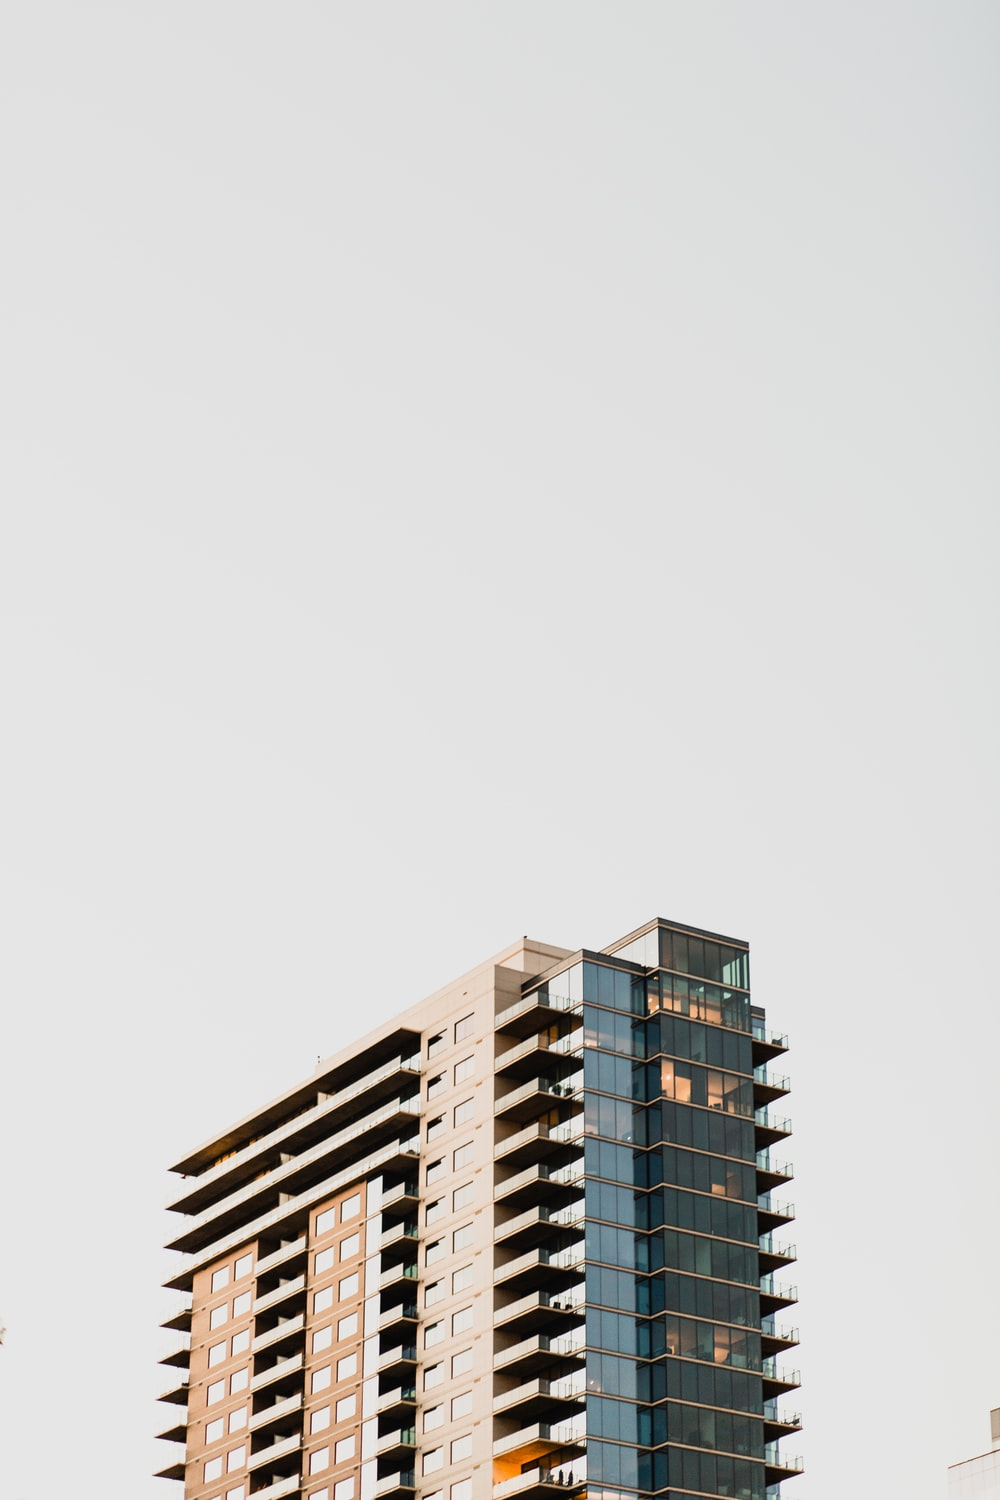 low-angle photography of gray and brown concrete high-rise building during daytime